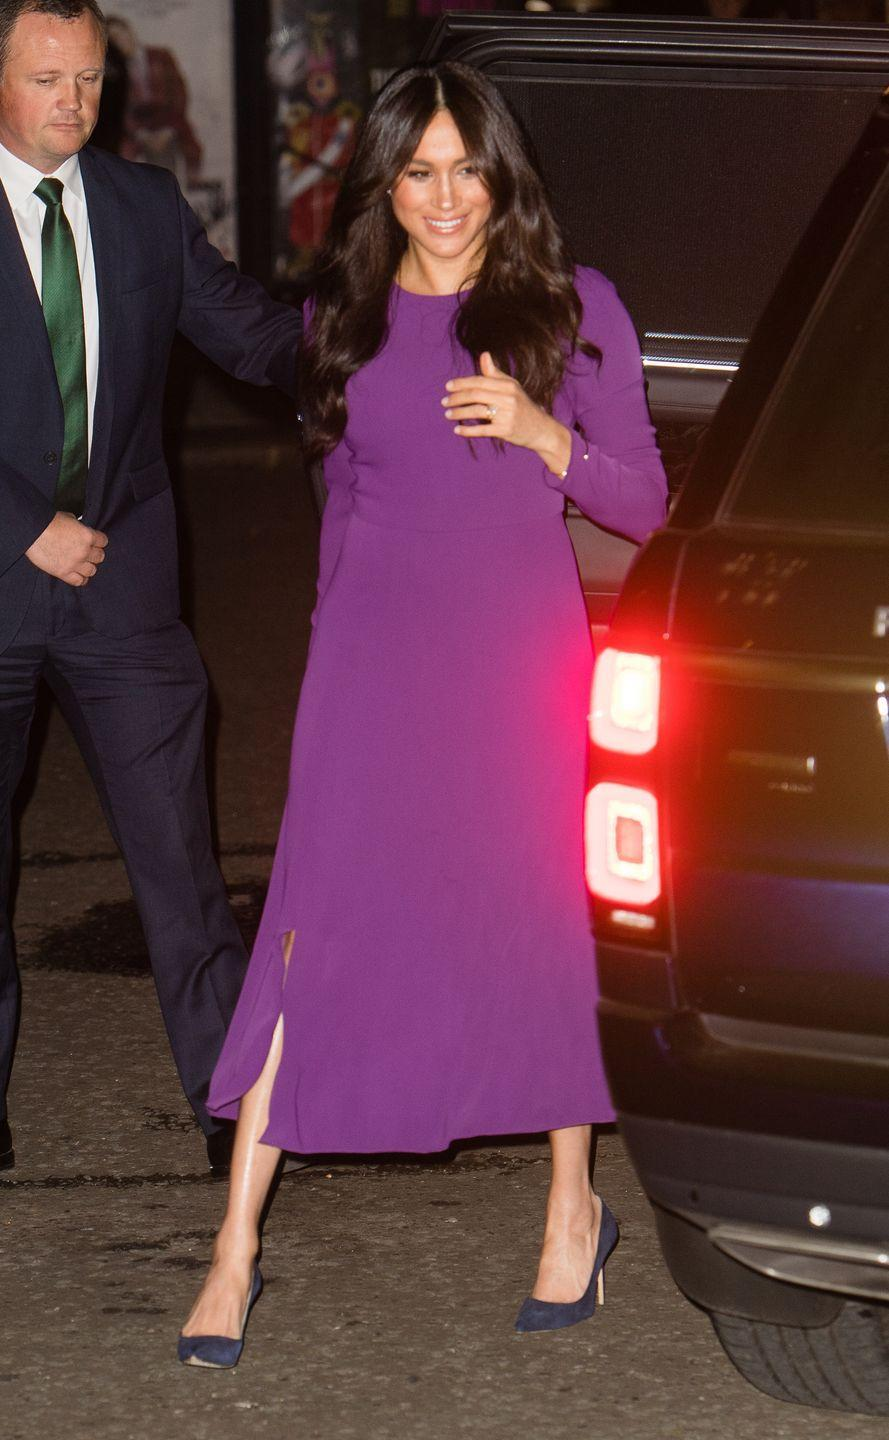 <p>The Duchess of Sussex arrived at the One Young World Summit in a purple Aritzia dress, which she paired with her blue Manolo Blahnik pumps.</p>